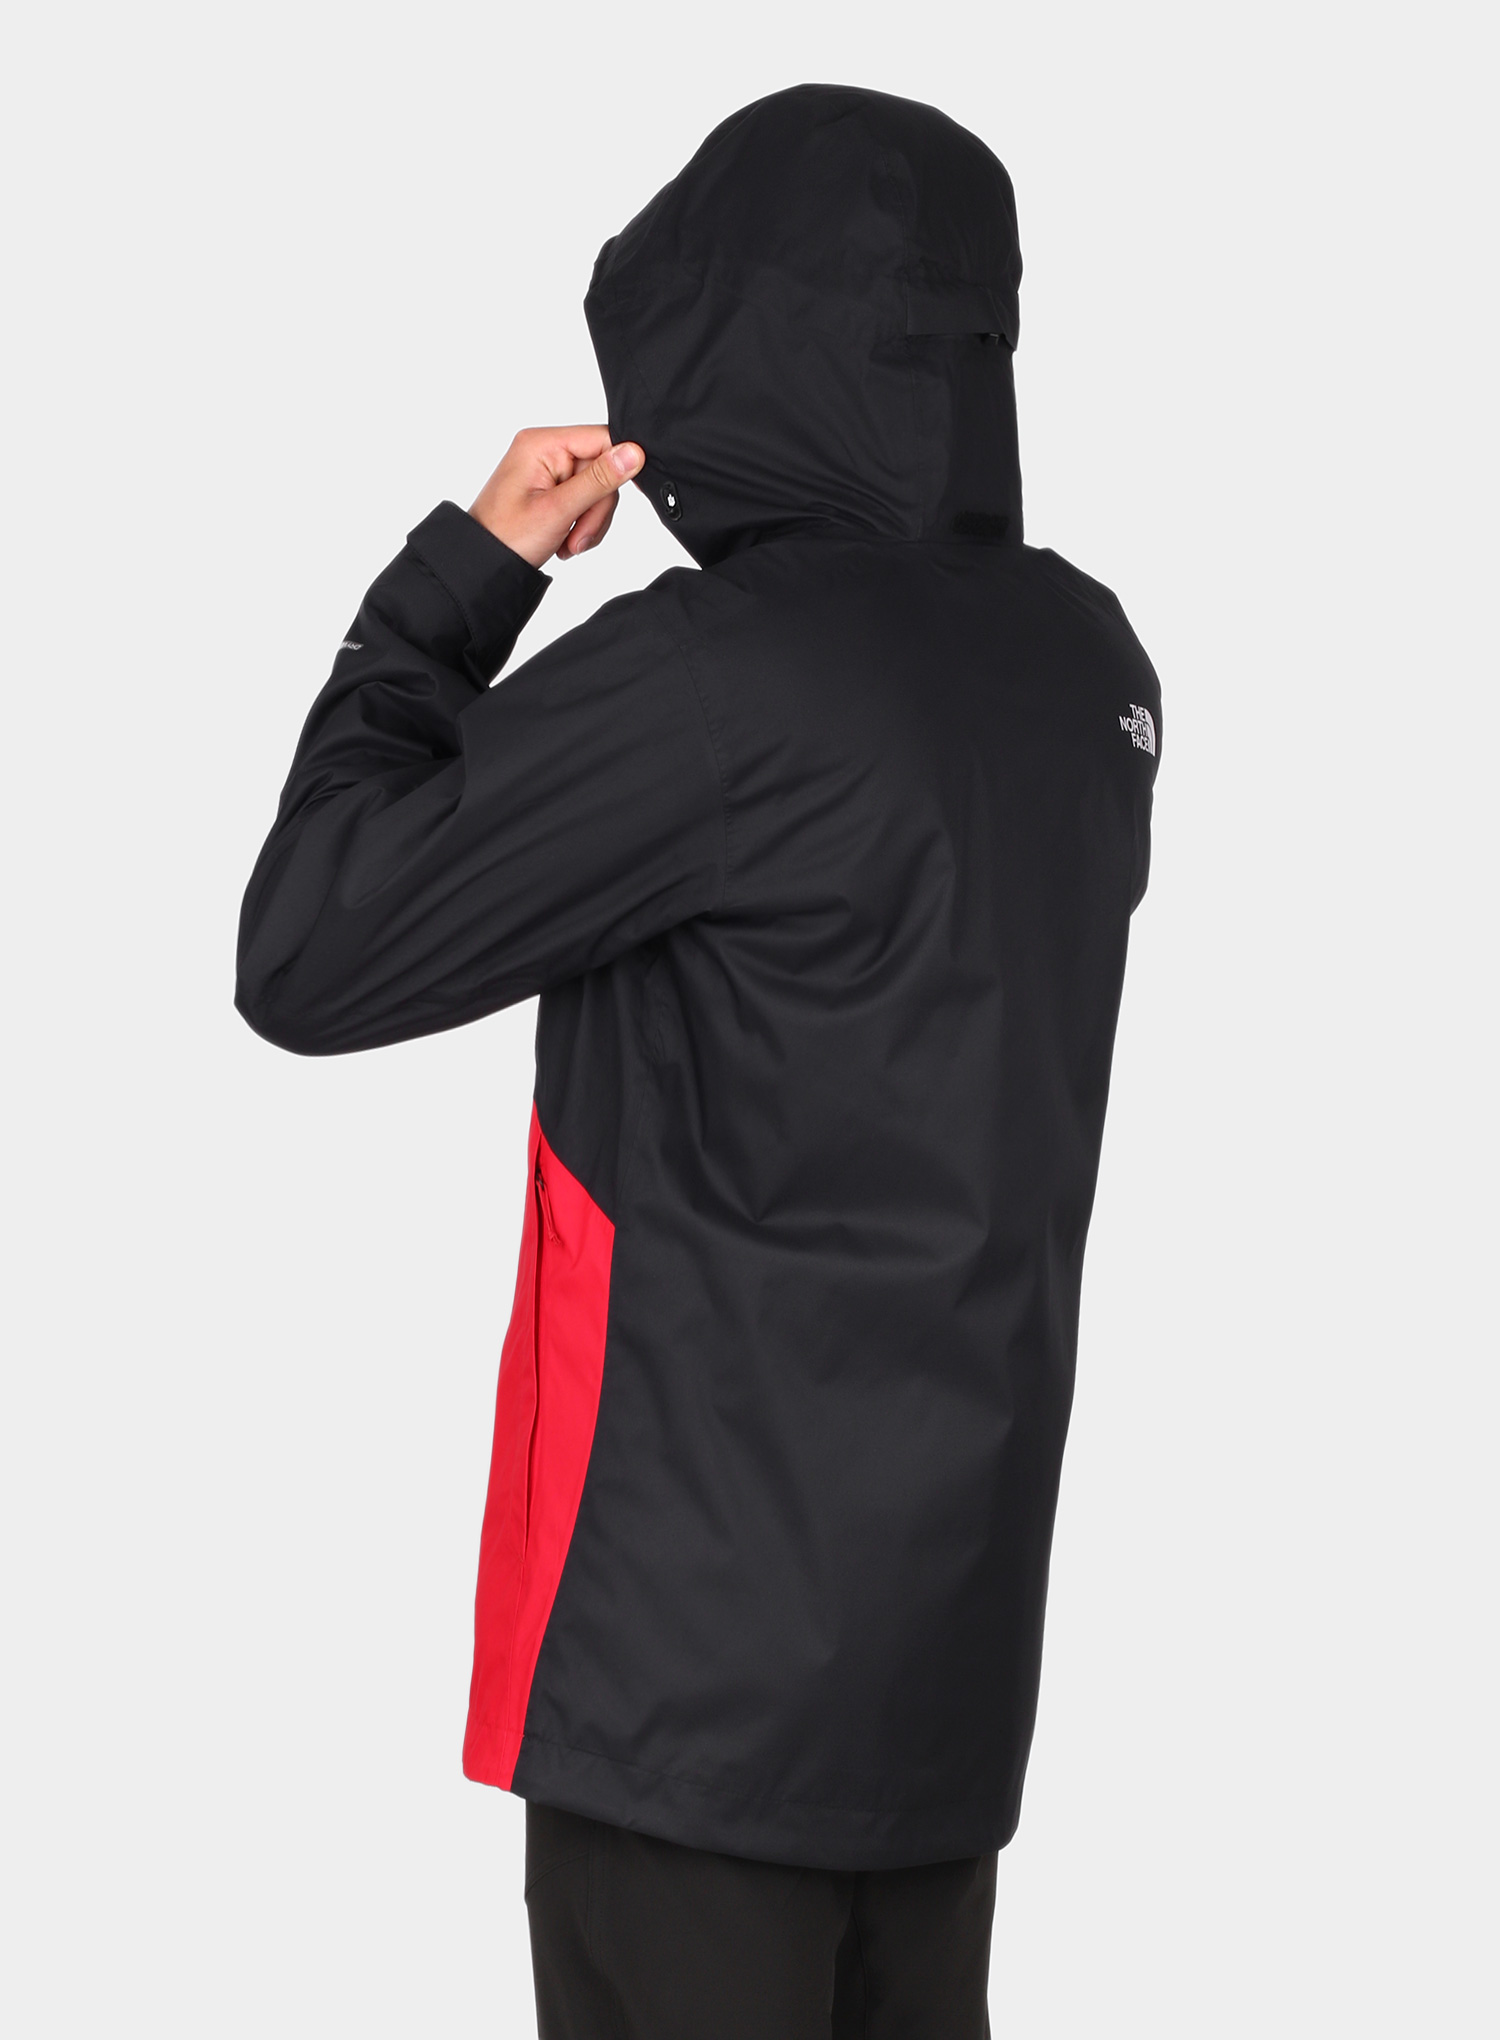 Kurtka 3w1 The North Face Kabru Triclimate - tnf red/cardinal red - zdjęcie nr. 4